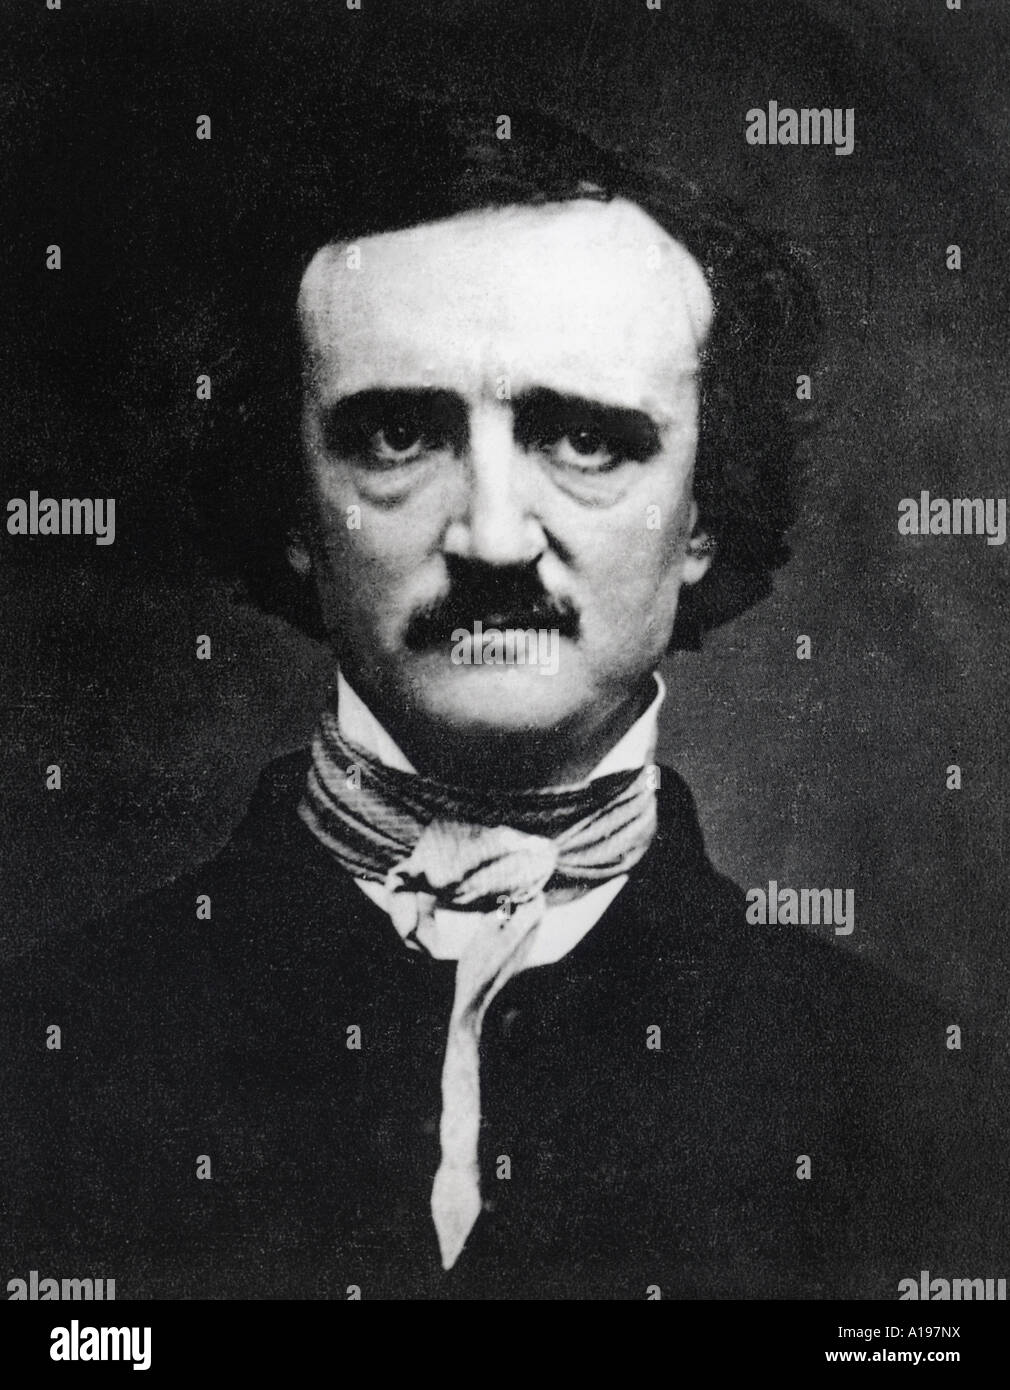 EDGAR ALLAN POE American writer 1809 to 1849 - Stock Image